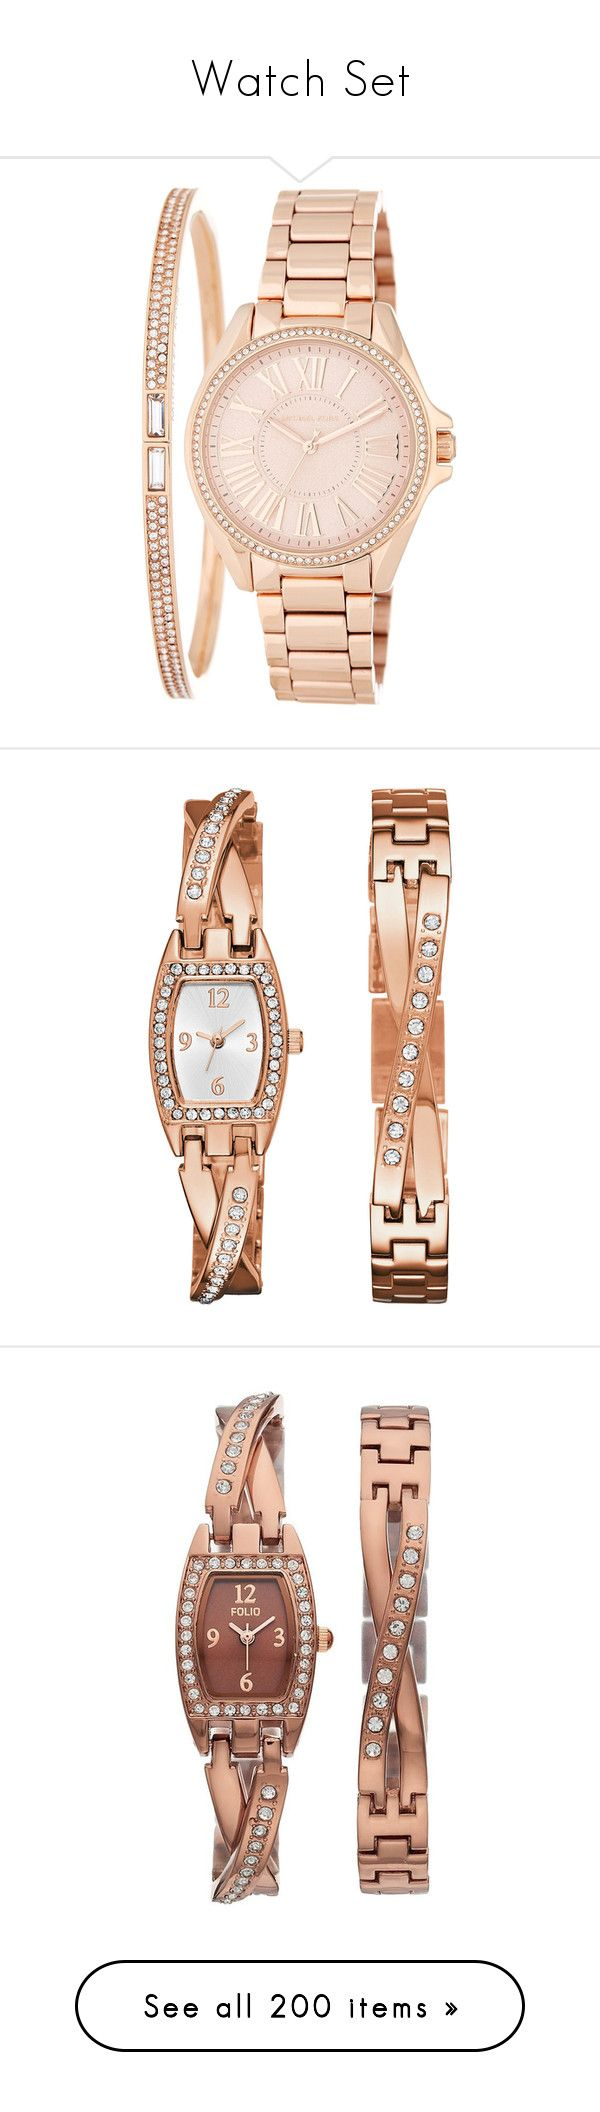 """Watch Set"" by lence-59 ❤ liked on Polyvore featuring jewelry, watches, rose gold, michael michael kors, stainless steel wrist watch, bangle watch bracelet, stainless steel bangle bracelet, stainless steel jewelry, watch charm bracelet and engraved heart charm"